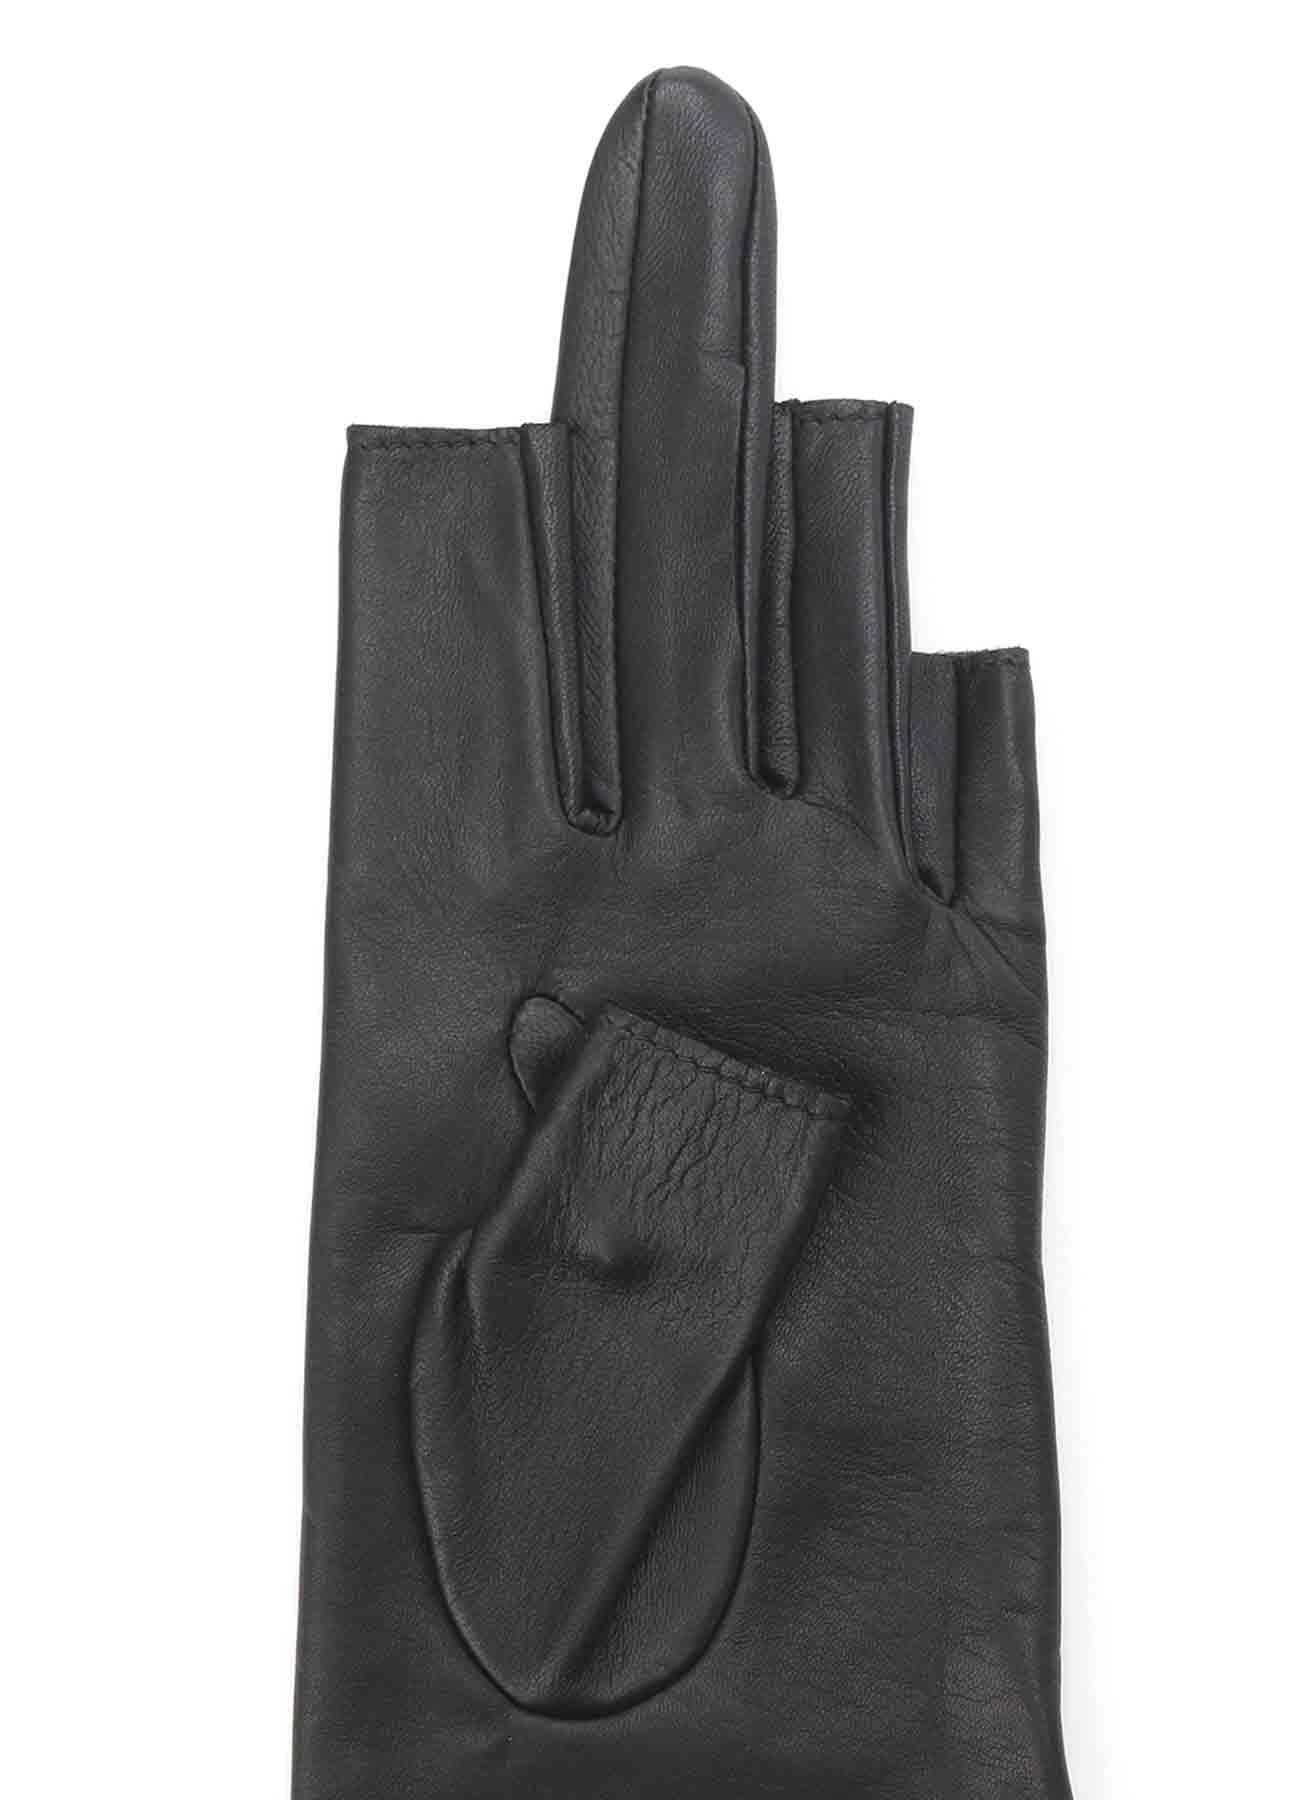 Greece Lamb Middle Finger Glove A